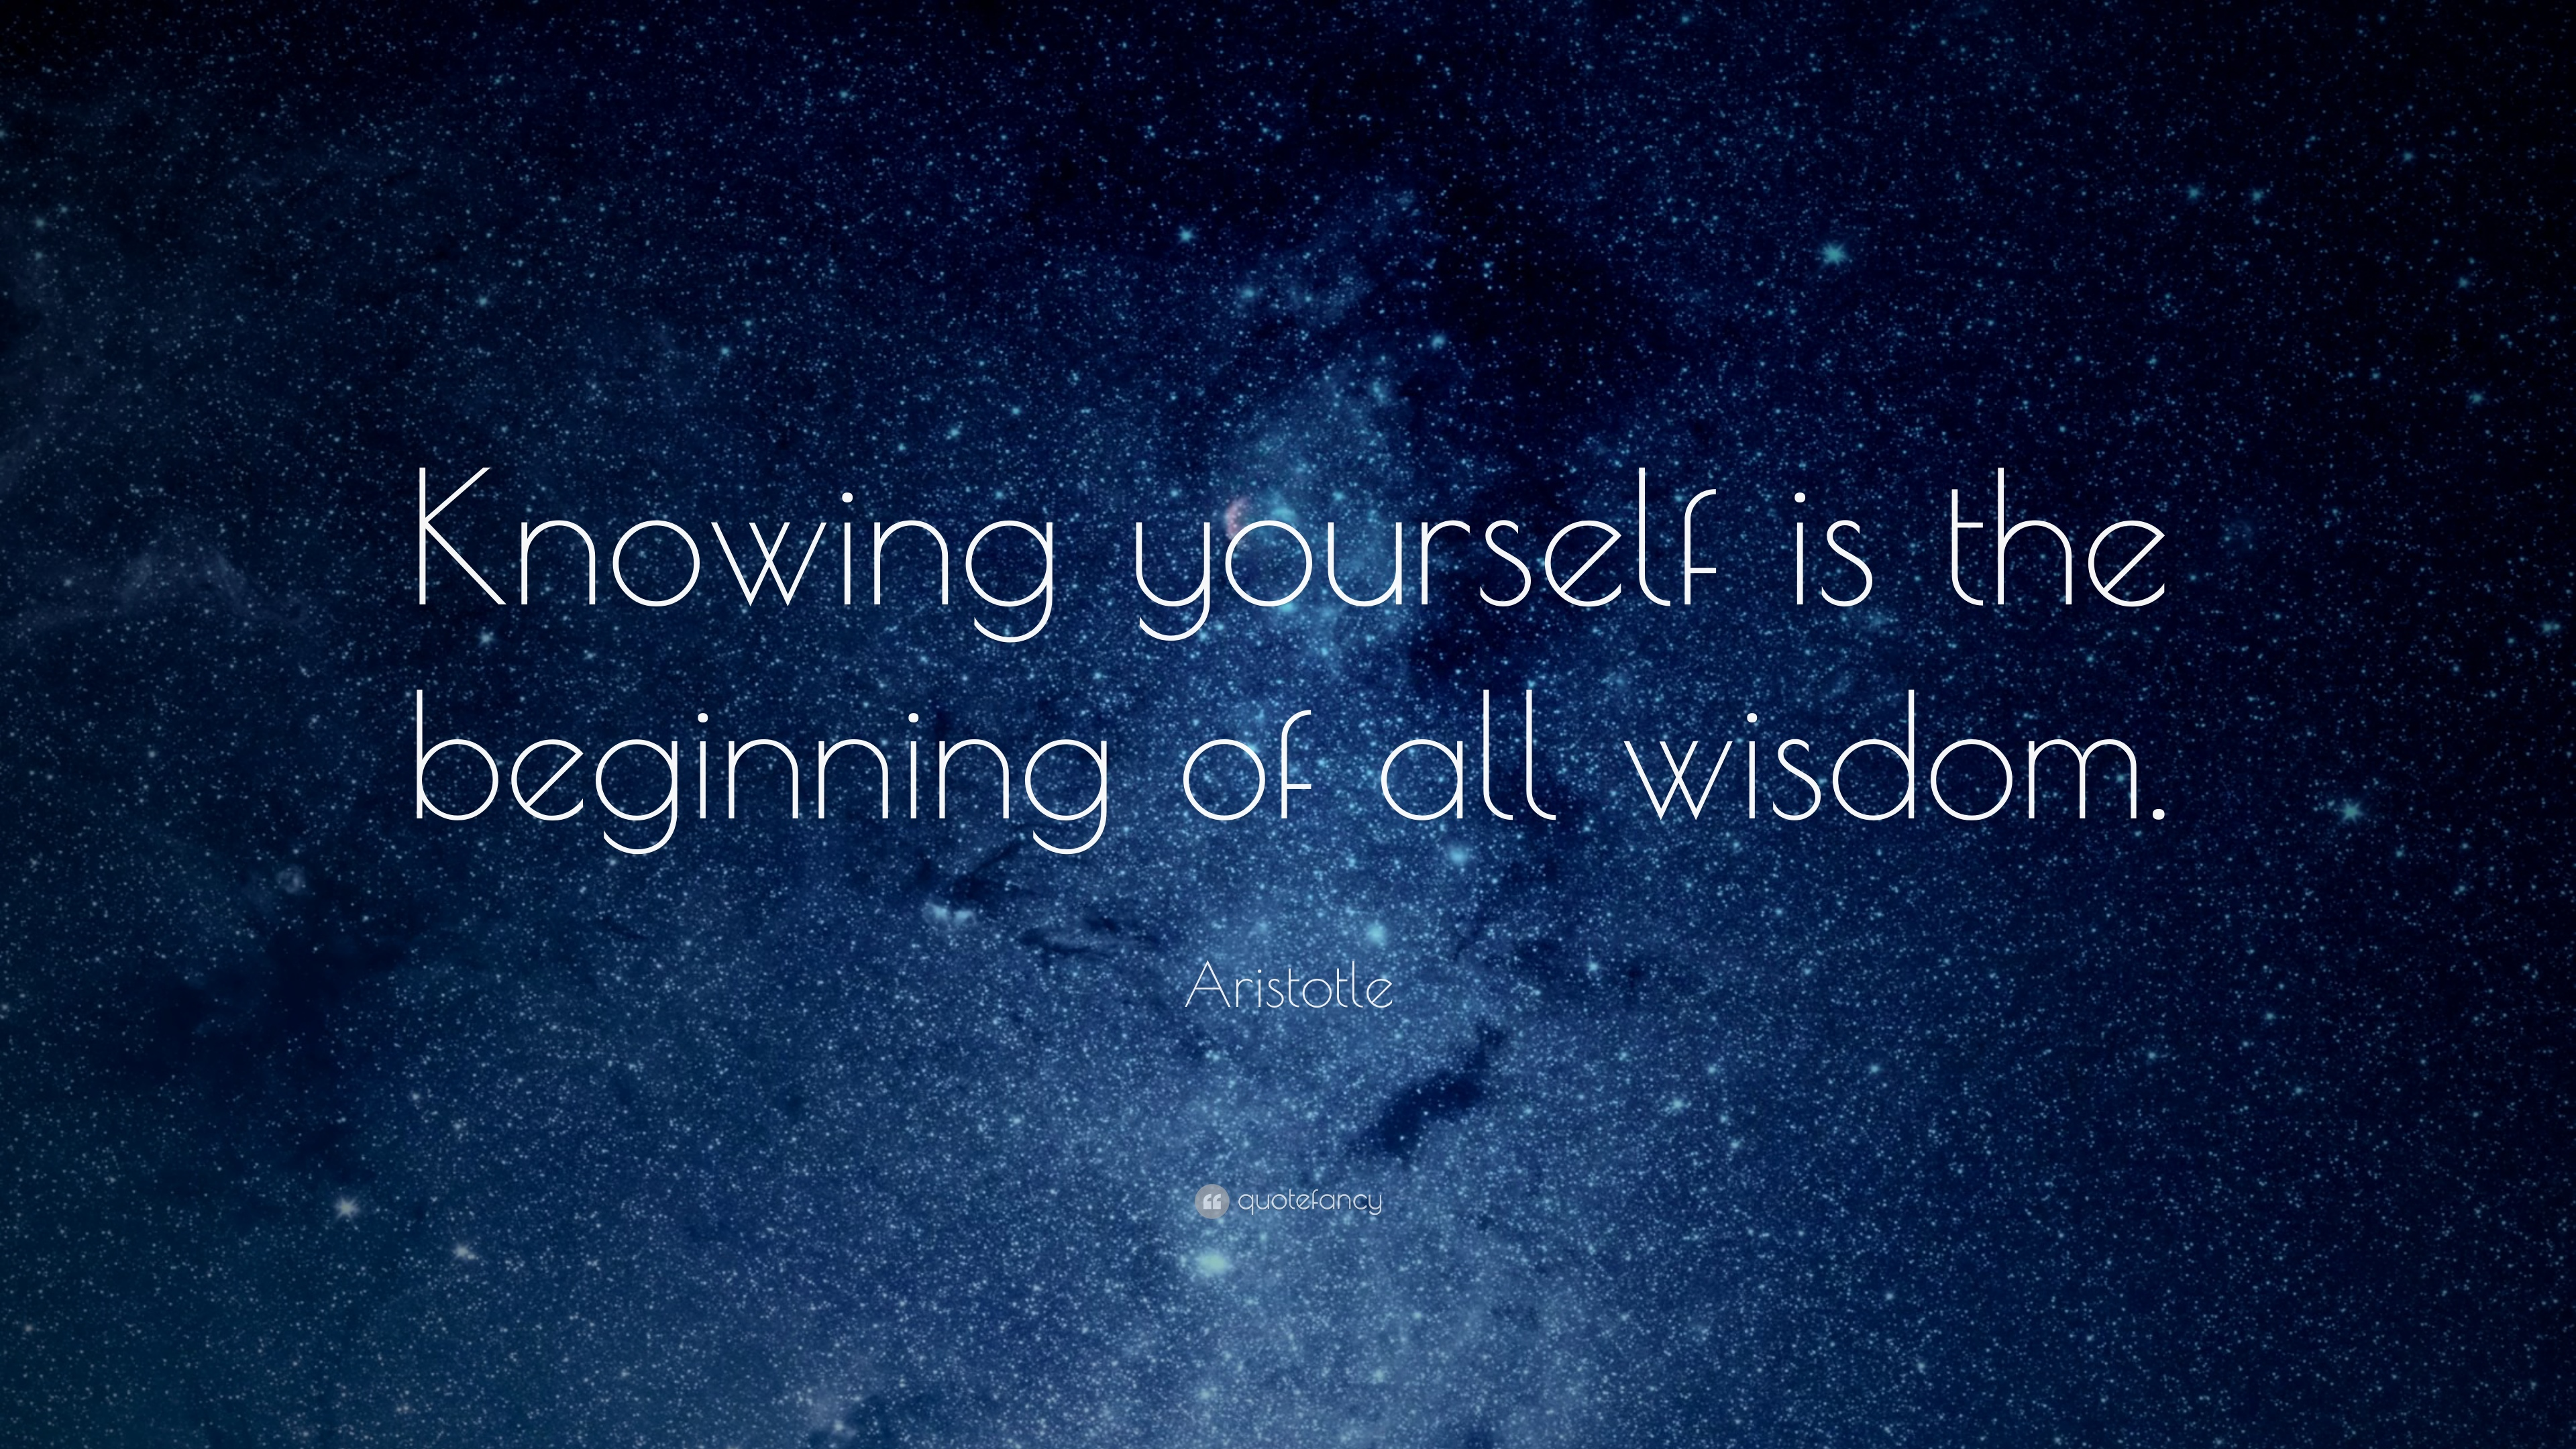 The Beginning All Wisdom Is Knowing Yourself Aristotle Quote Of